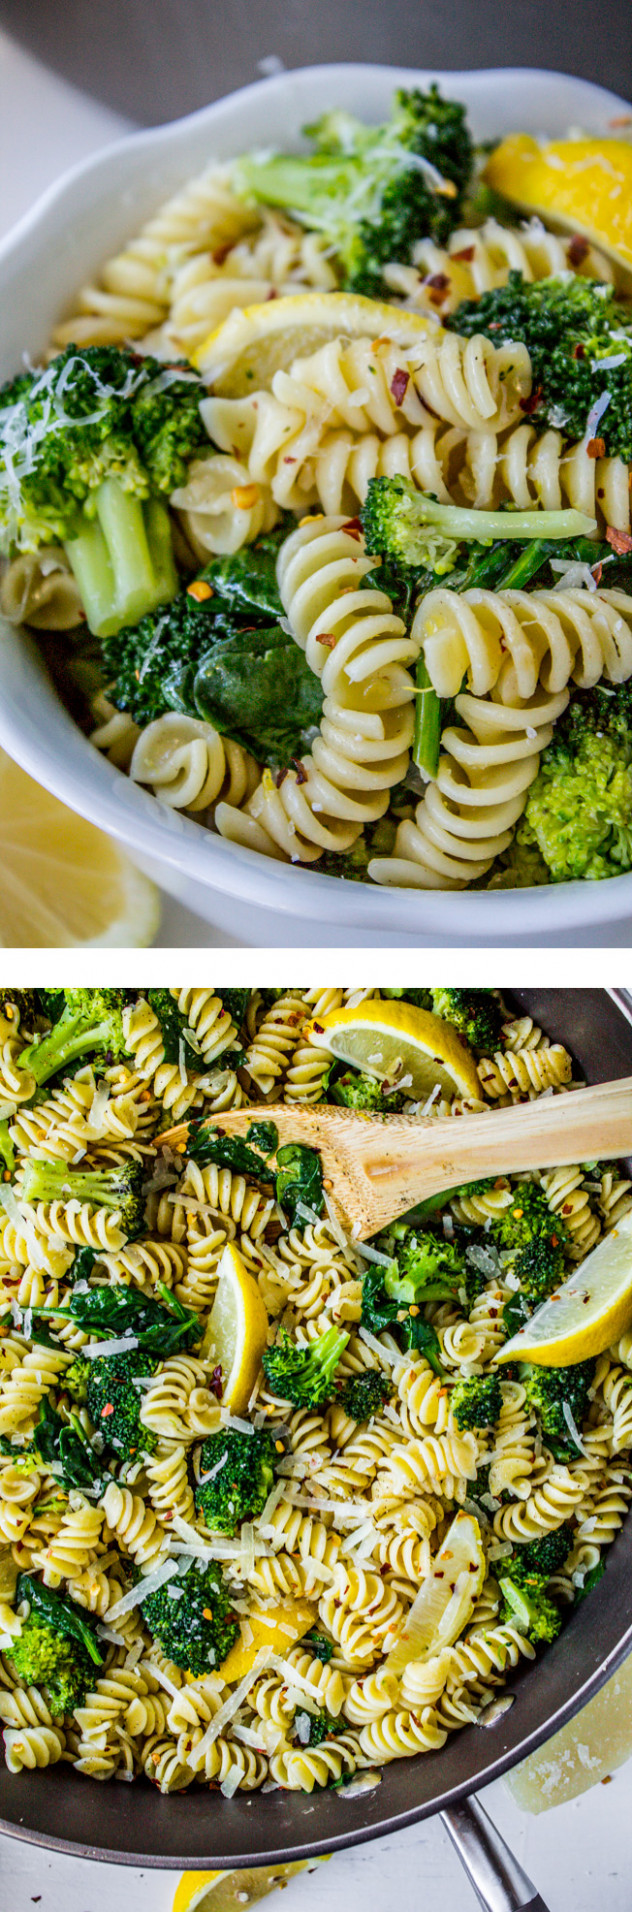 12 Minute Lemon Broccoli Pasta Skillet - healthy pasta recipes vegetarian